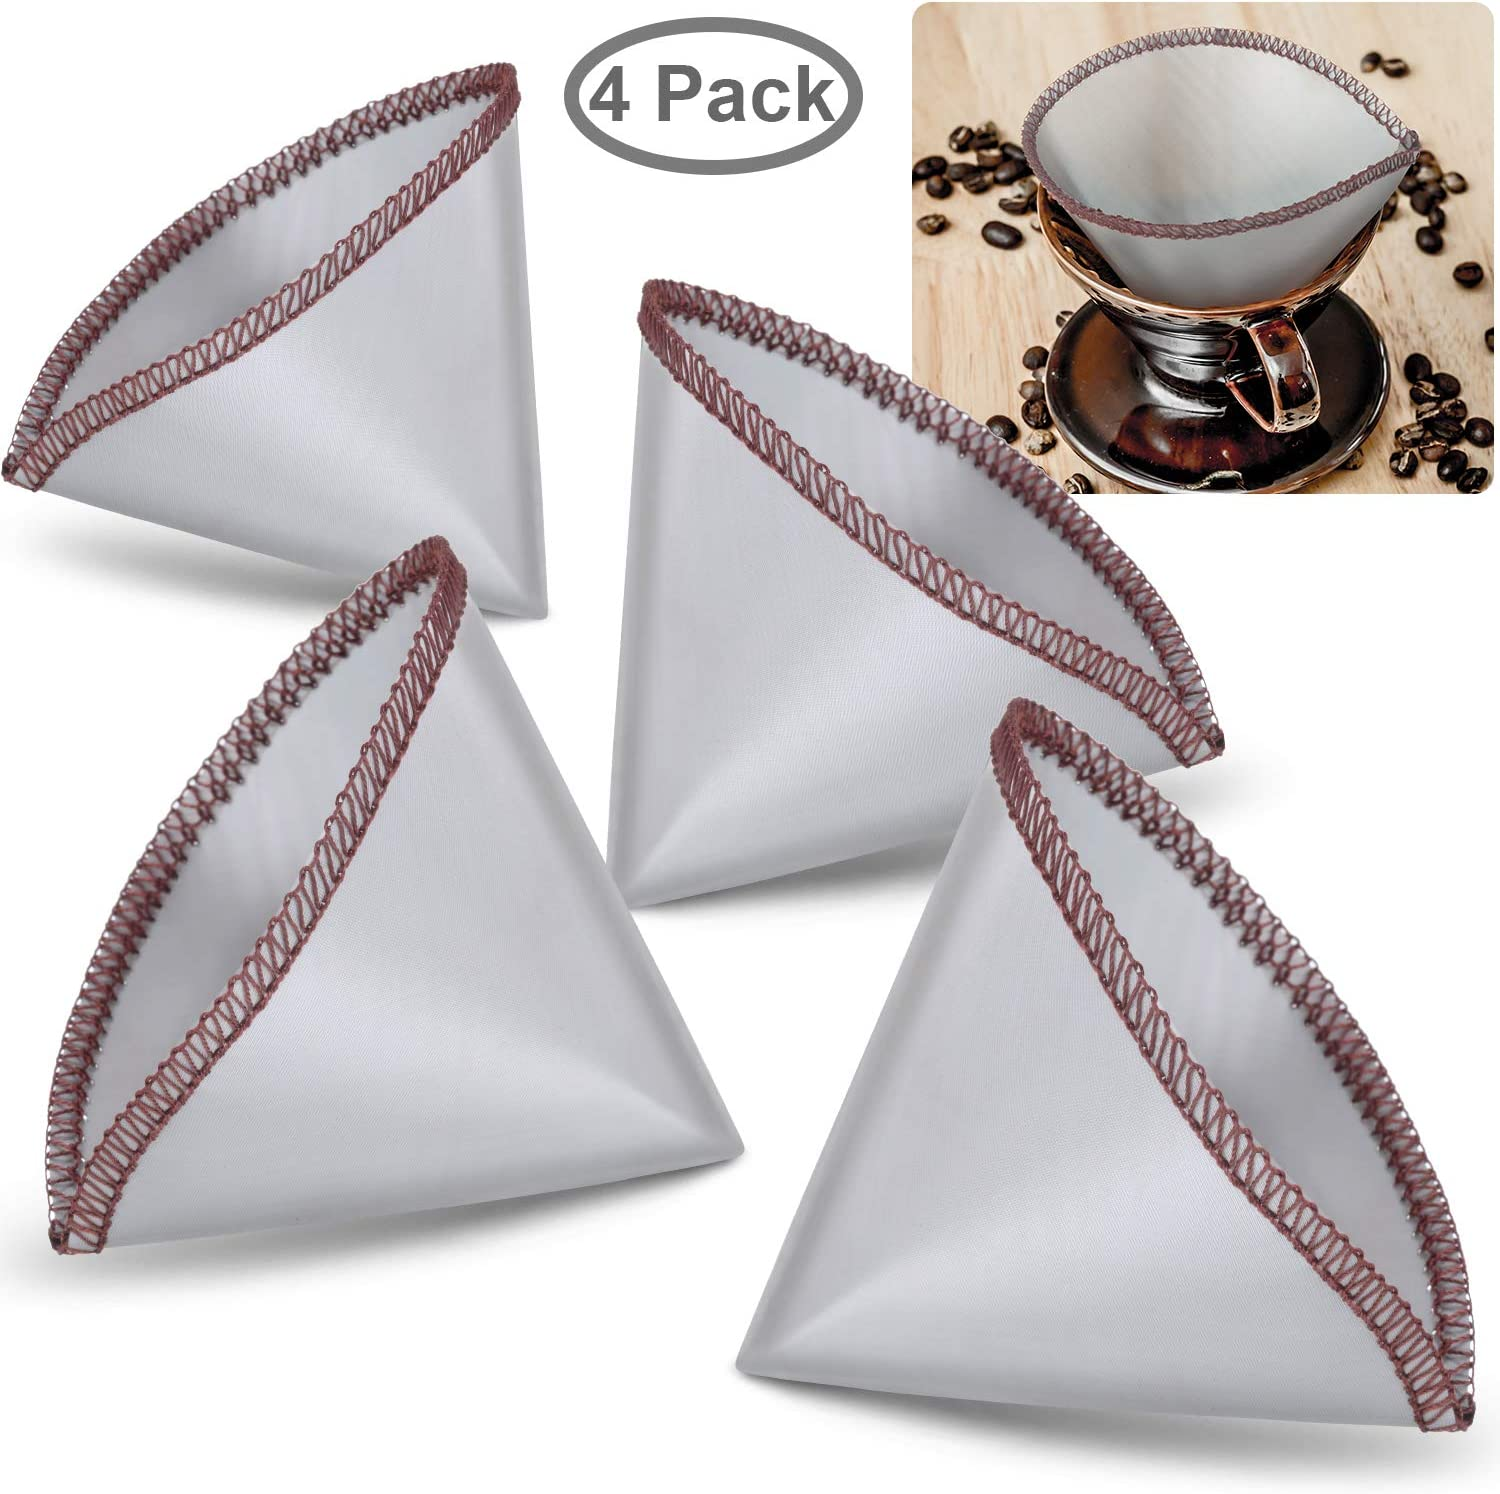 4 Pieces Reusable Pour Over Coffee Filter Mesh Paperless Coffee Filter Stainless Steel Cone Filter 1 zu 2 Cup Coffee Drip Compatible mit Hario, Chemex, Ovalware